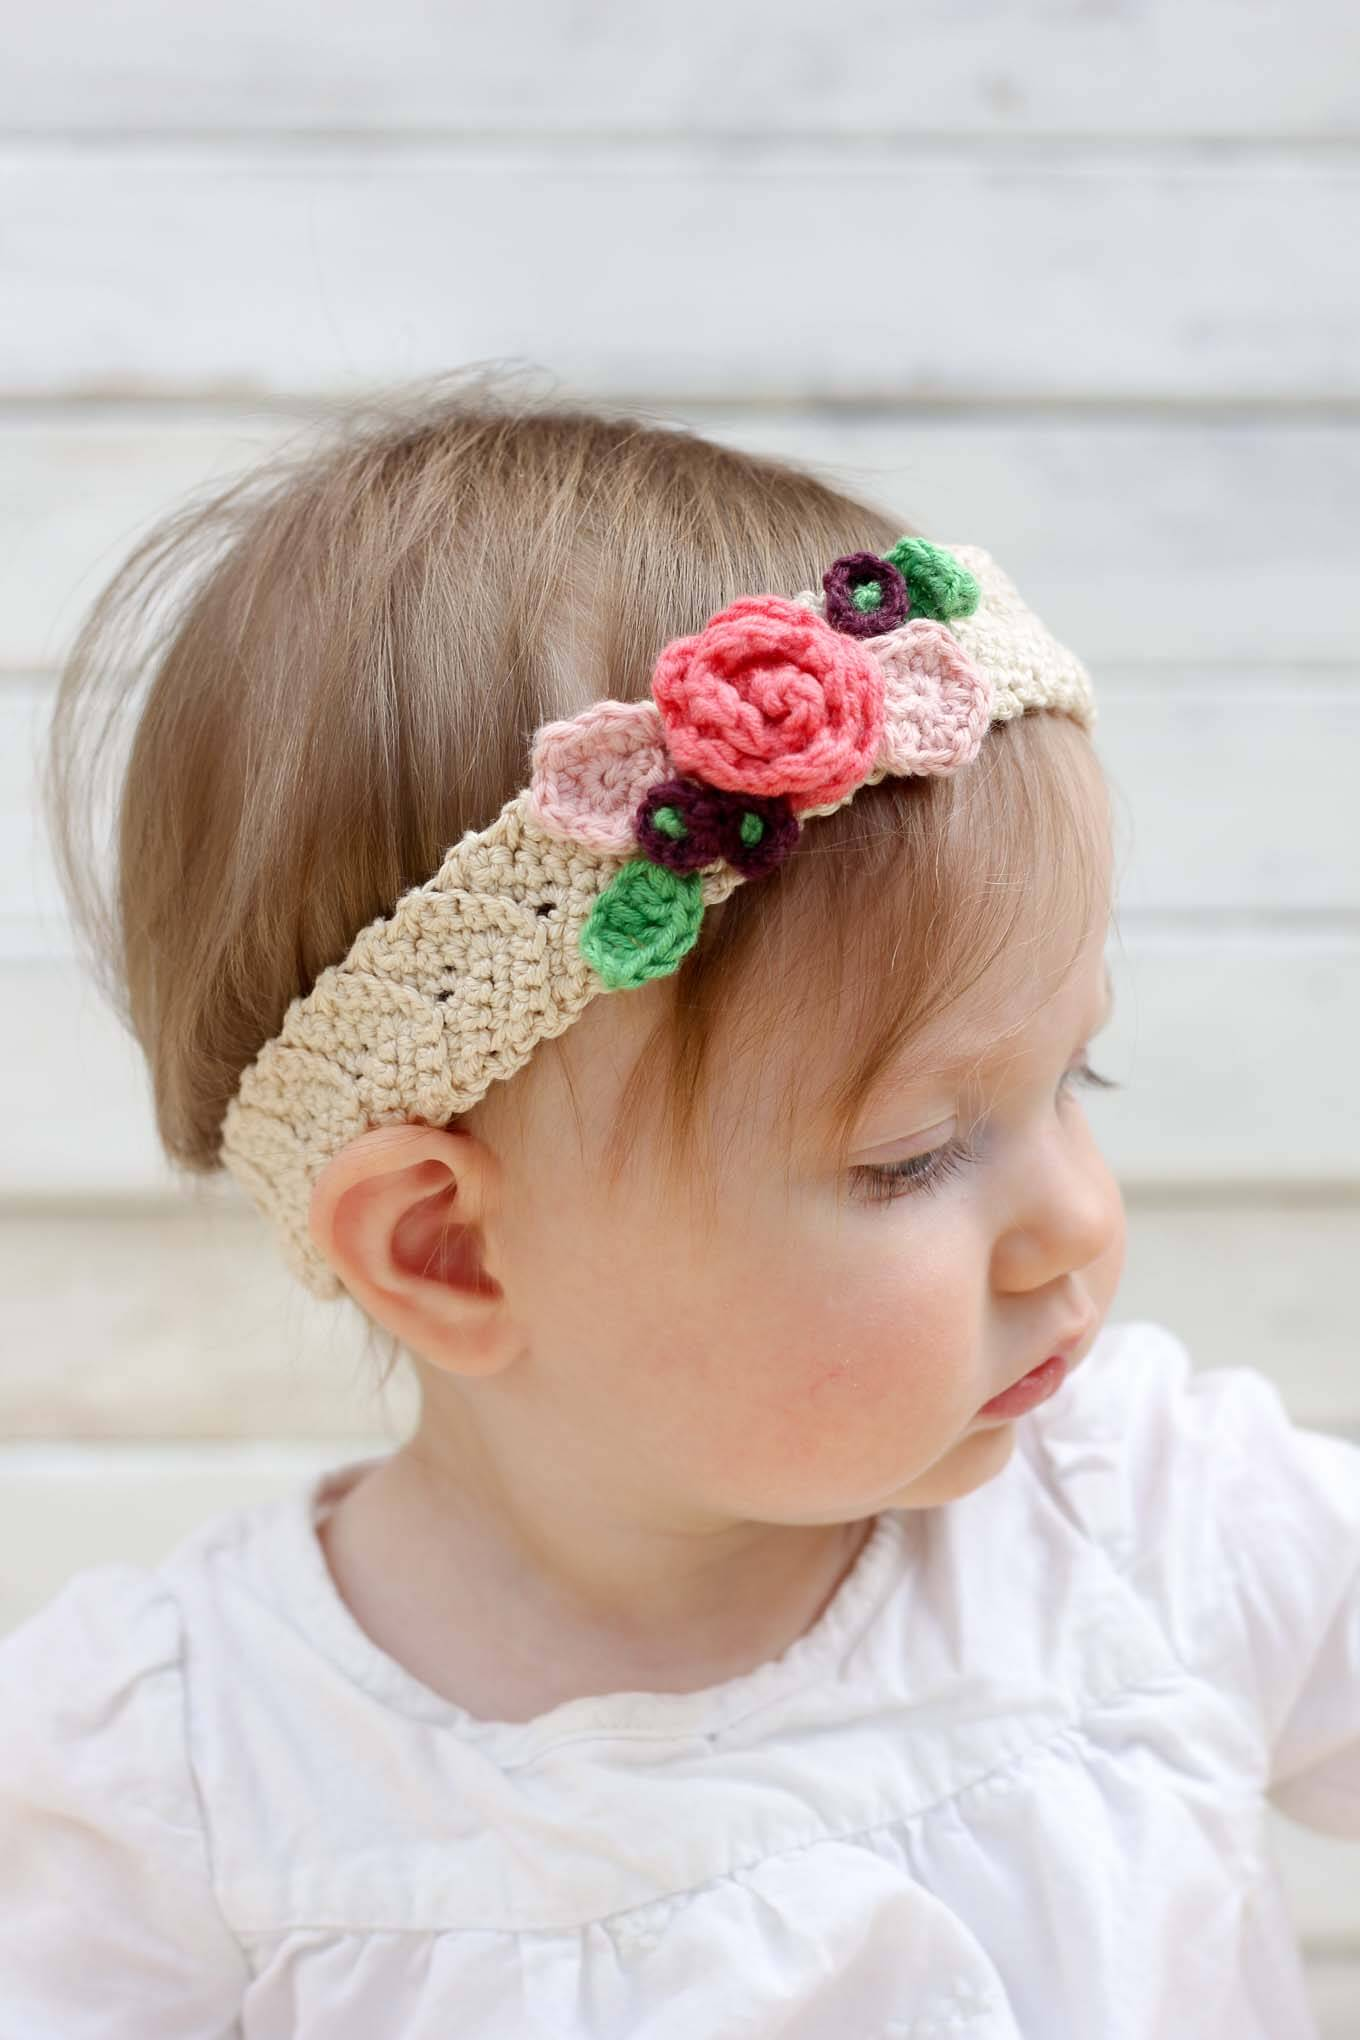 Spring Has Sprung Flower Headband - This list of unique crochet baby headbands for girls are sweet and simple. You can whip these free crochet patterns up in no time, and there are so many options. #CrochetBabyHeadbands #BabyHeadbandPatterns #FreeCrochetPattern